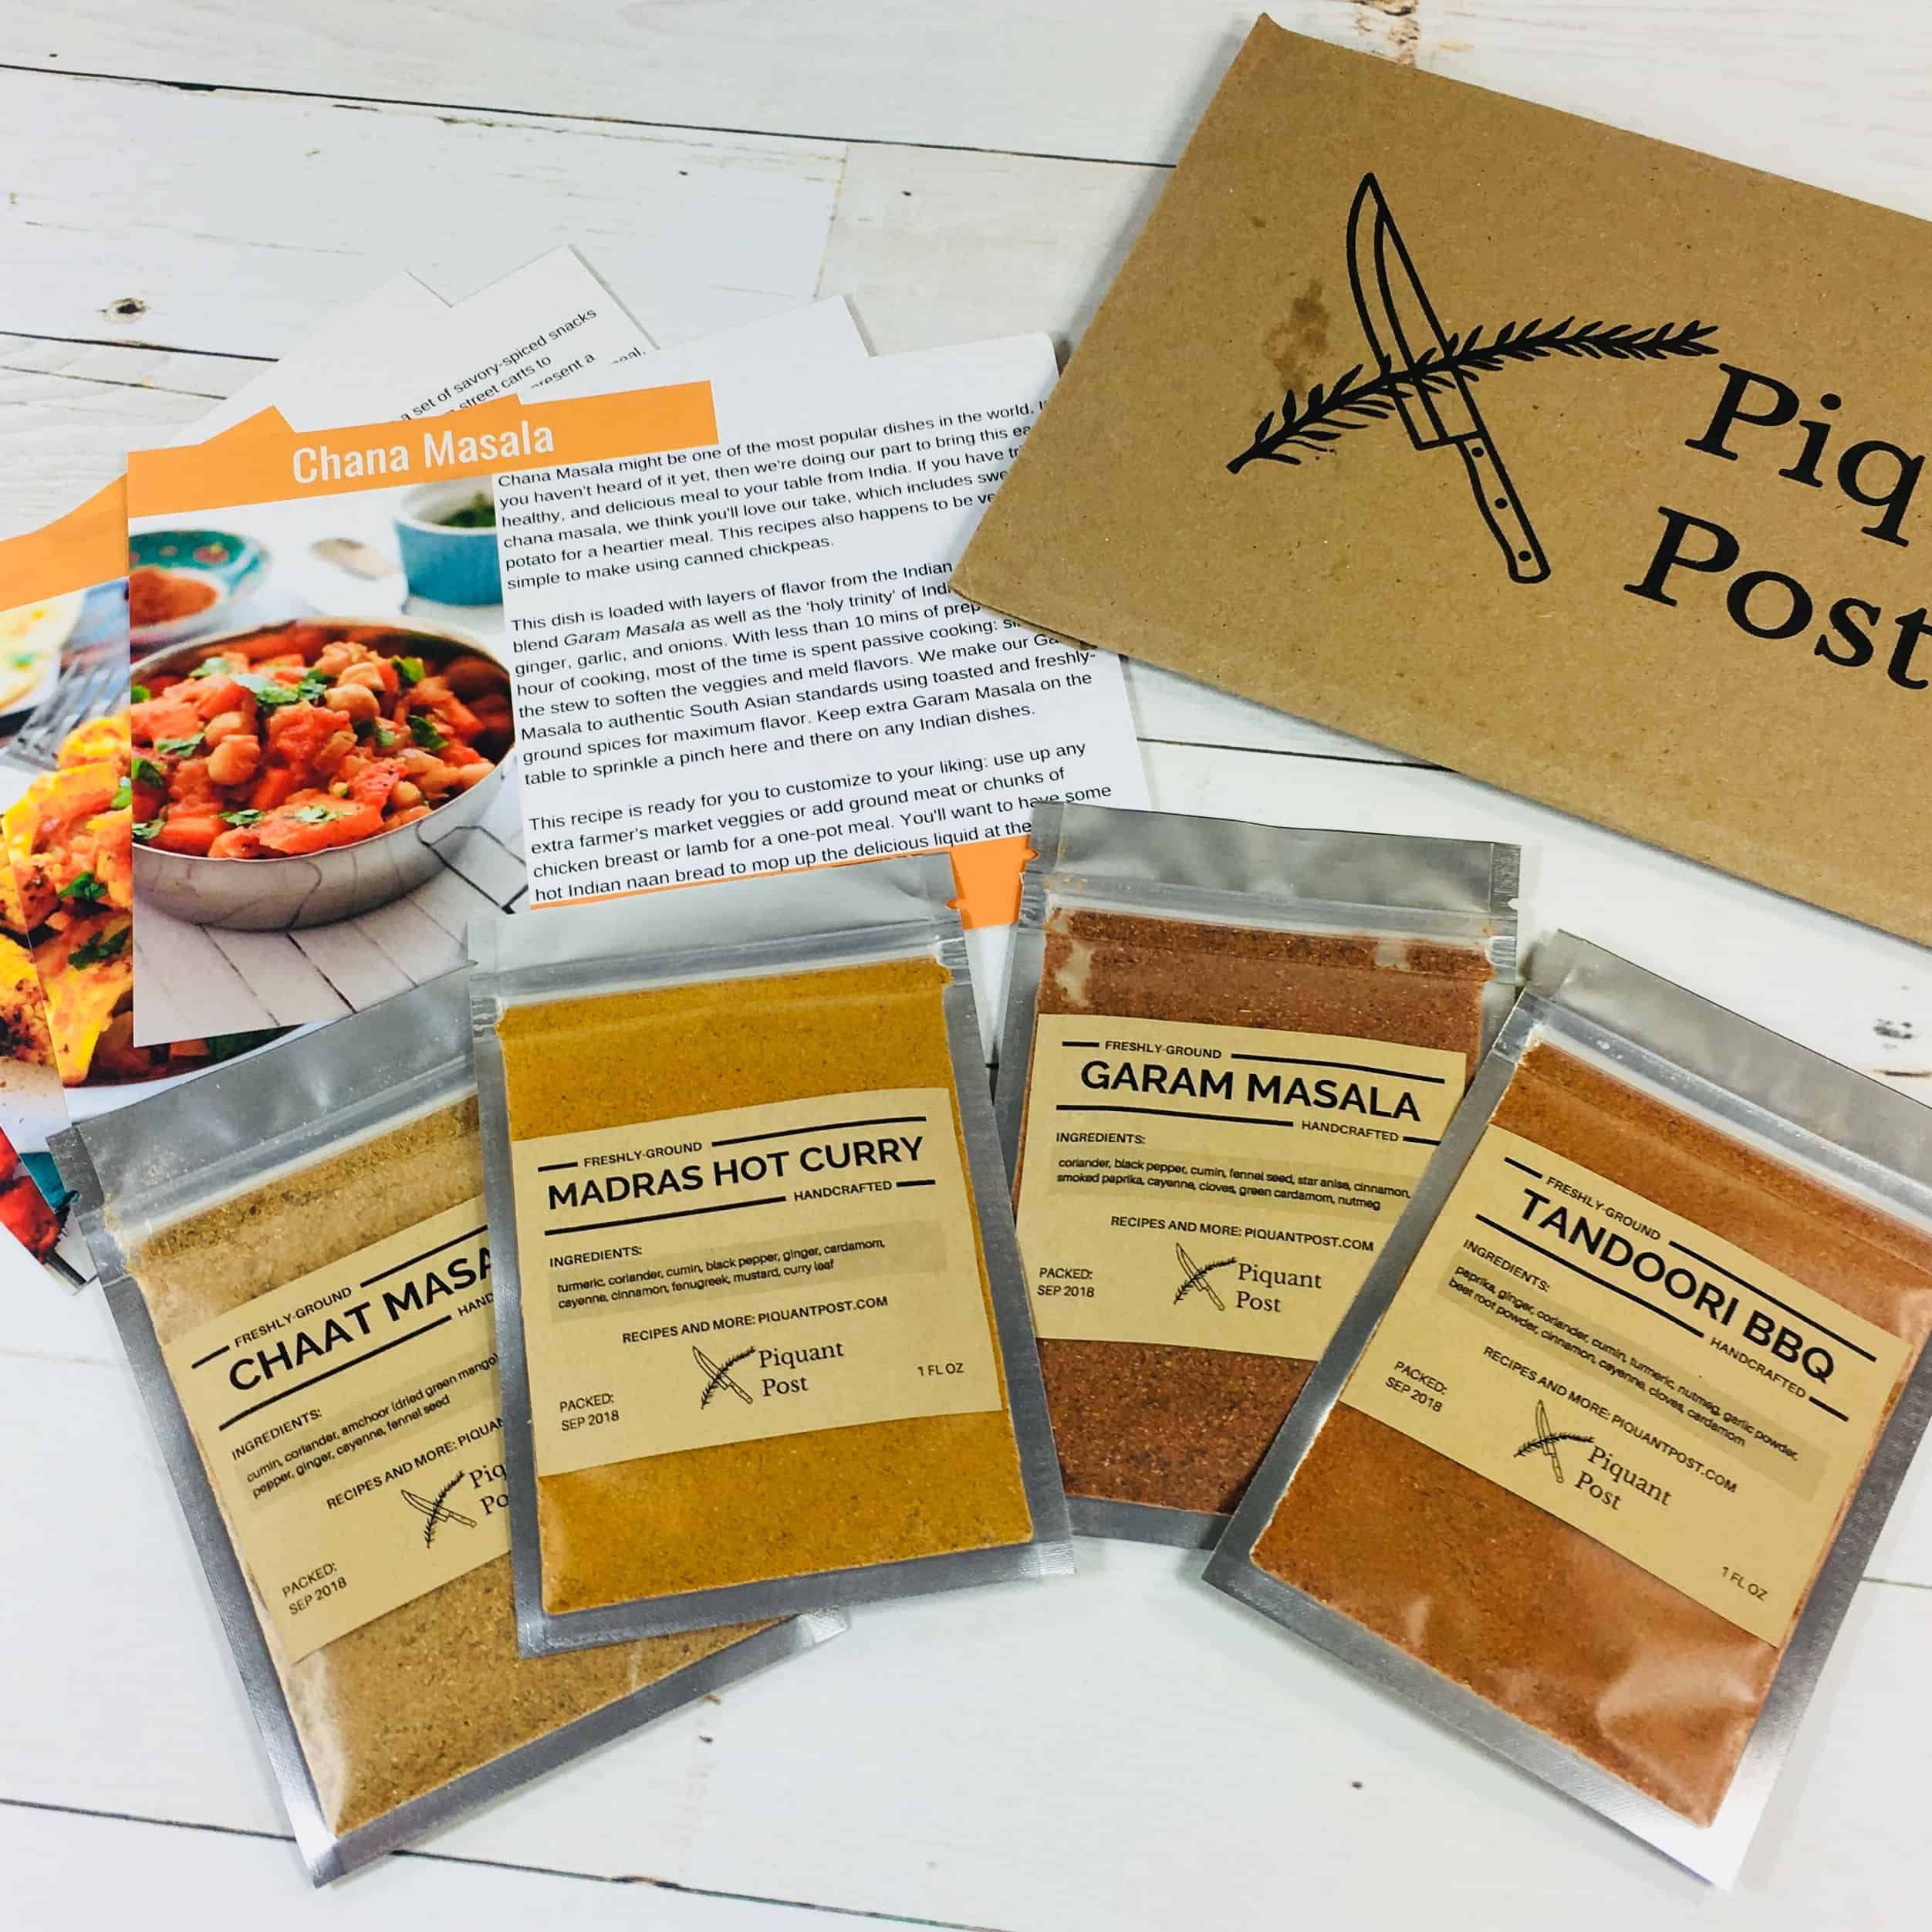 Piquant Post September 2018 Subscription Box Review + Coupon!